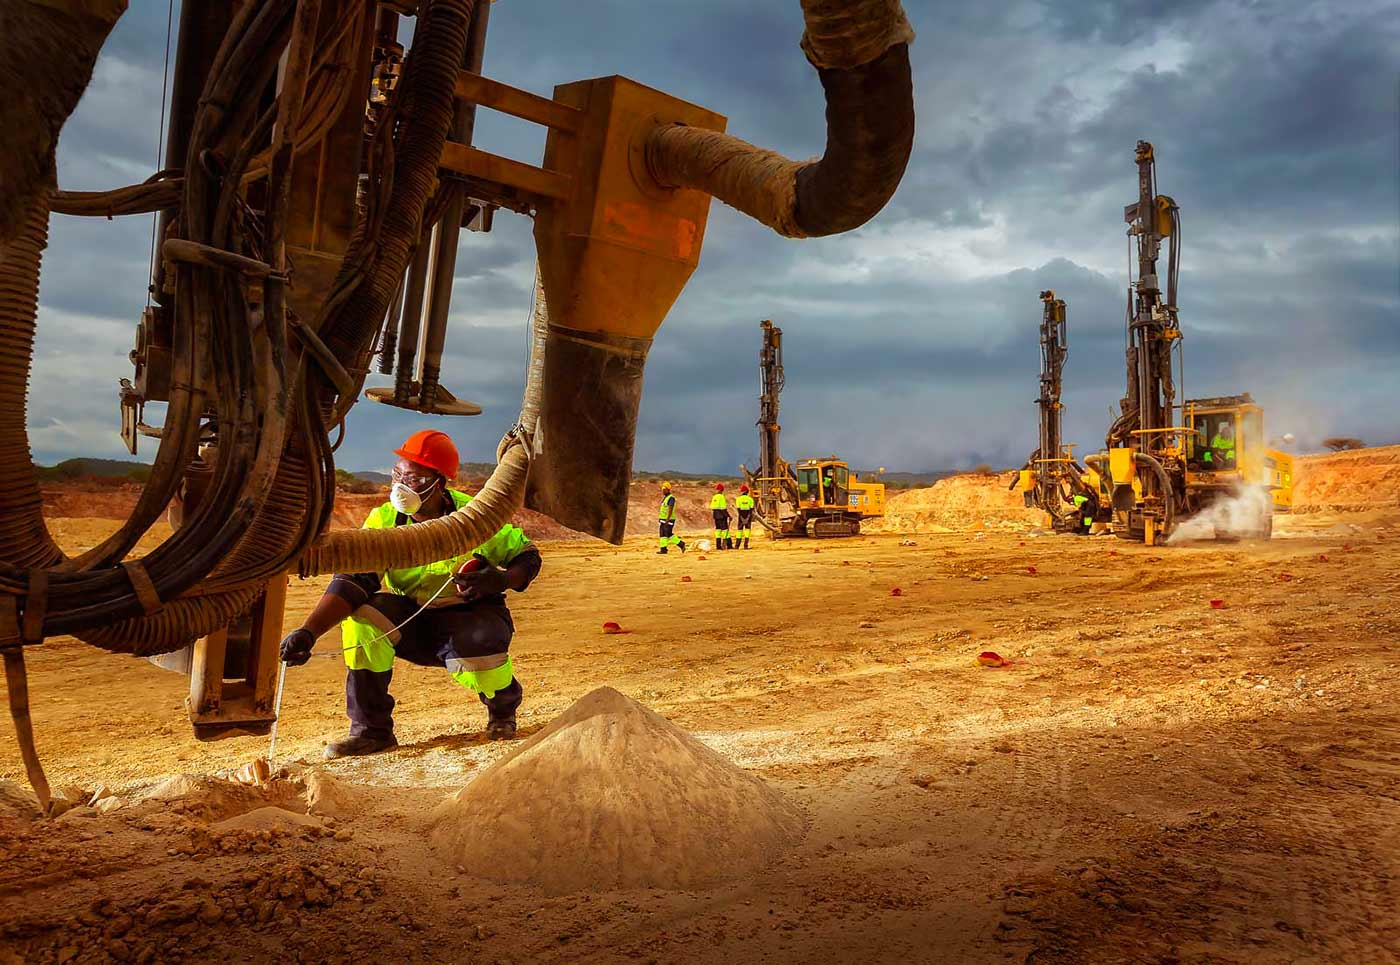 Drill rig operator checks bore depth at diamond mine - people in mining photographs